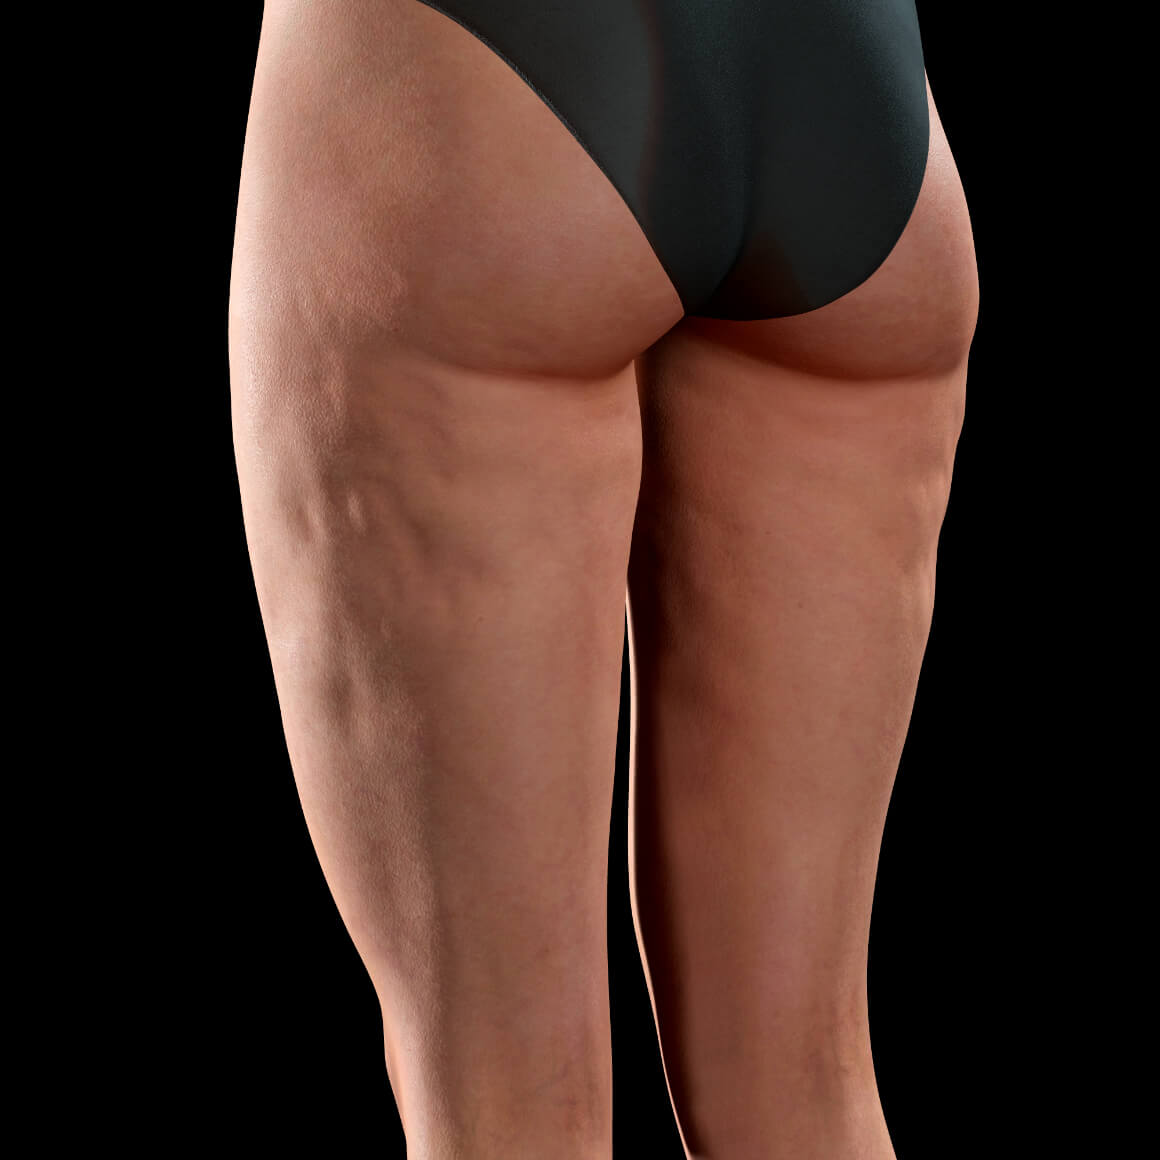 Angled Clinique Chloé female patient with cellulite on her thighs